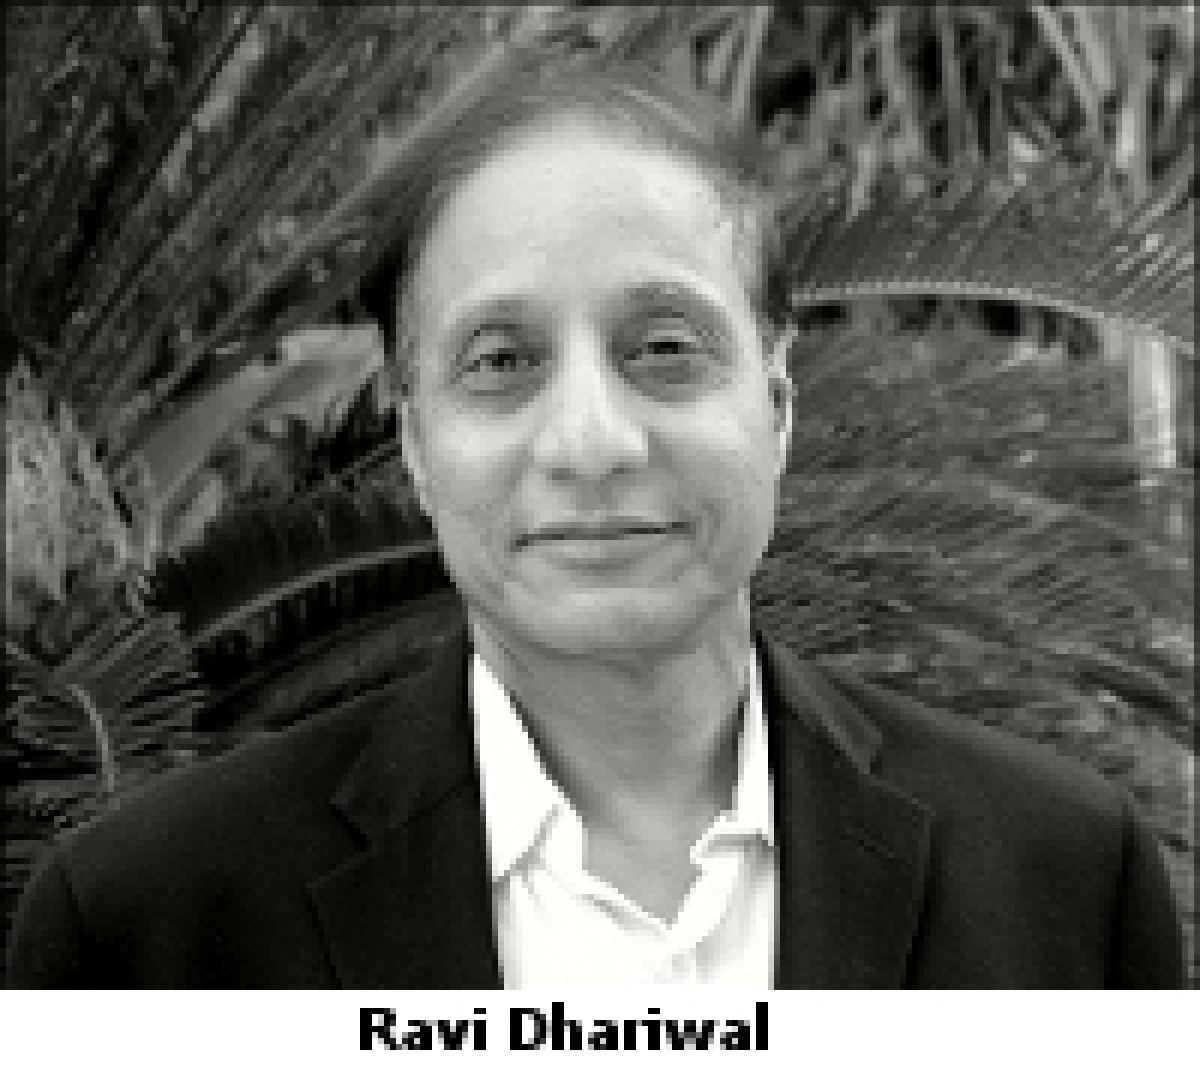 BCCL's Ravi Dhariwal to be replaced by Bharti Retail CEO Raj Jain